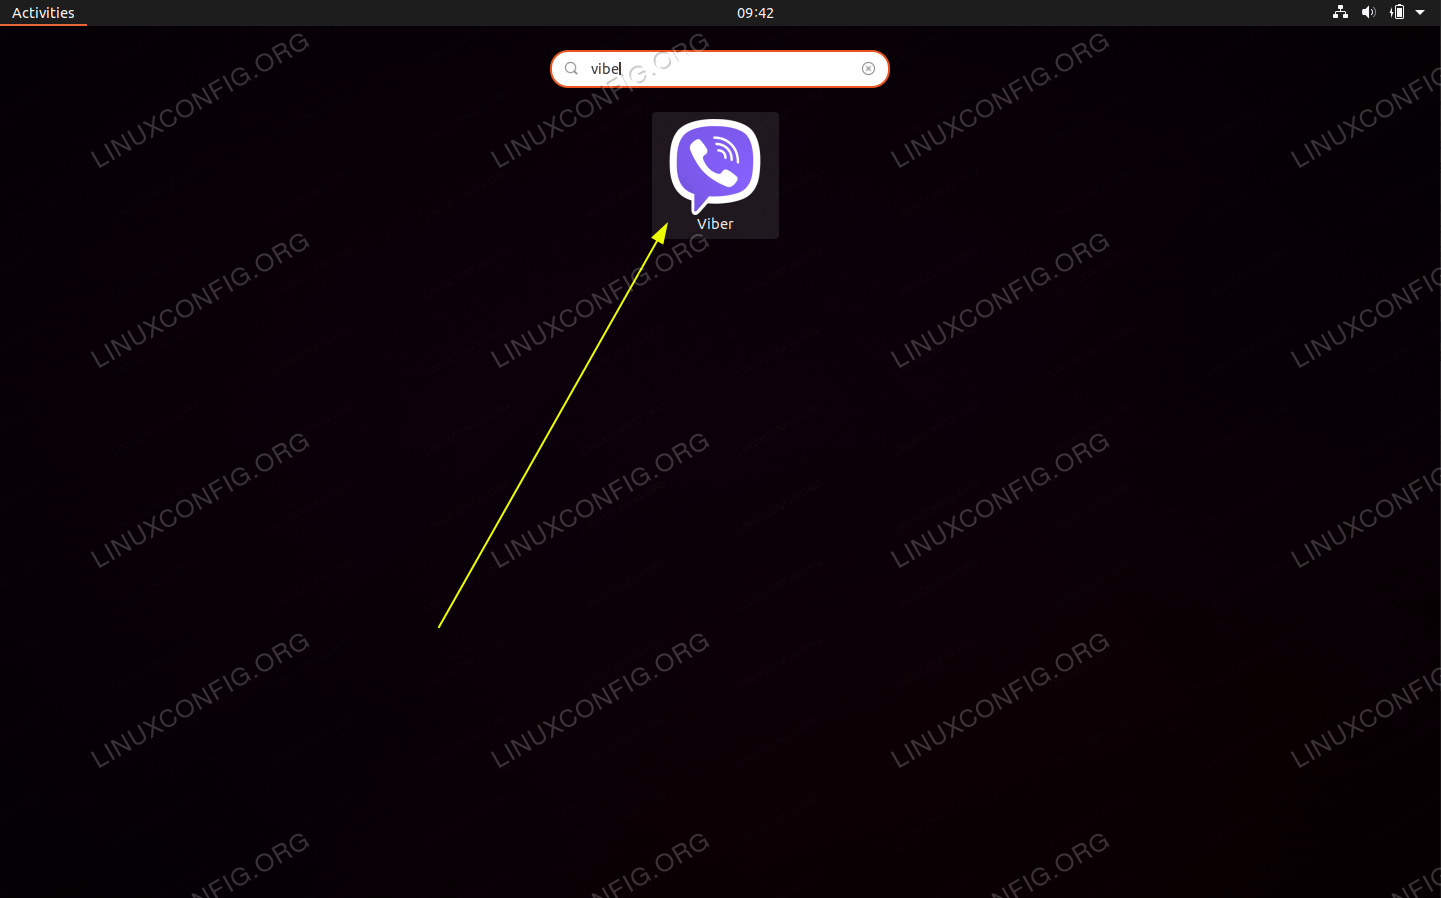 Use Activities menu to search and start Viber on your Ubuntu 20.04 desktop.